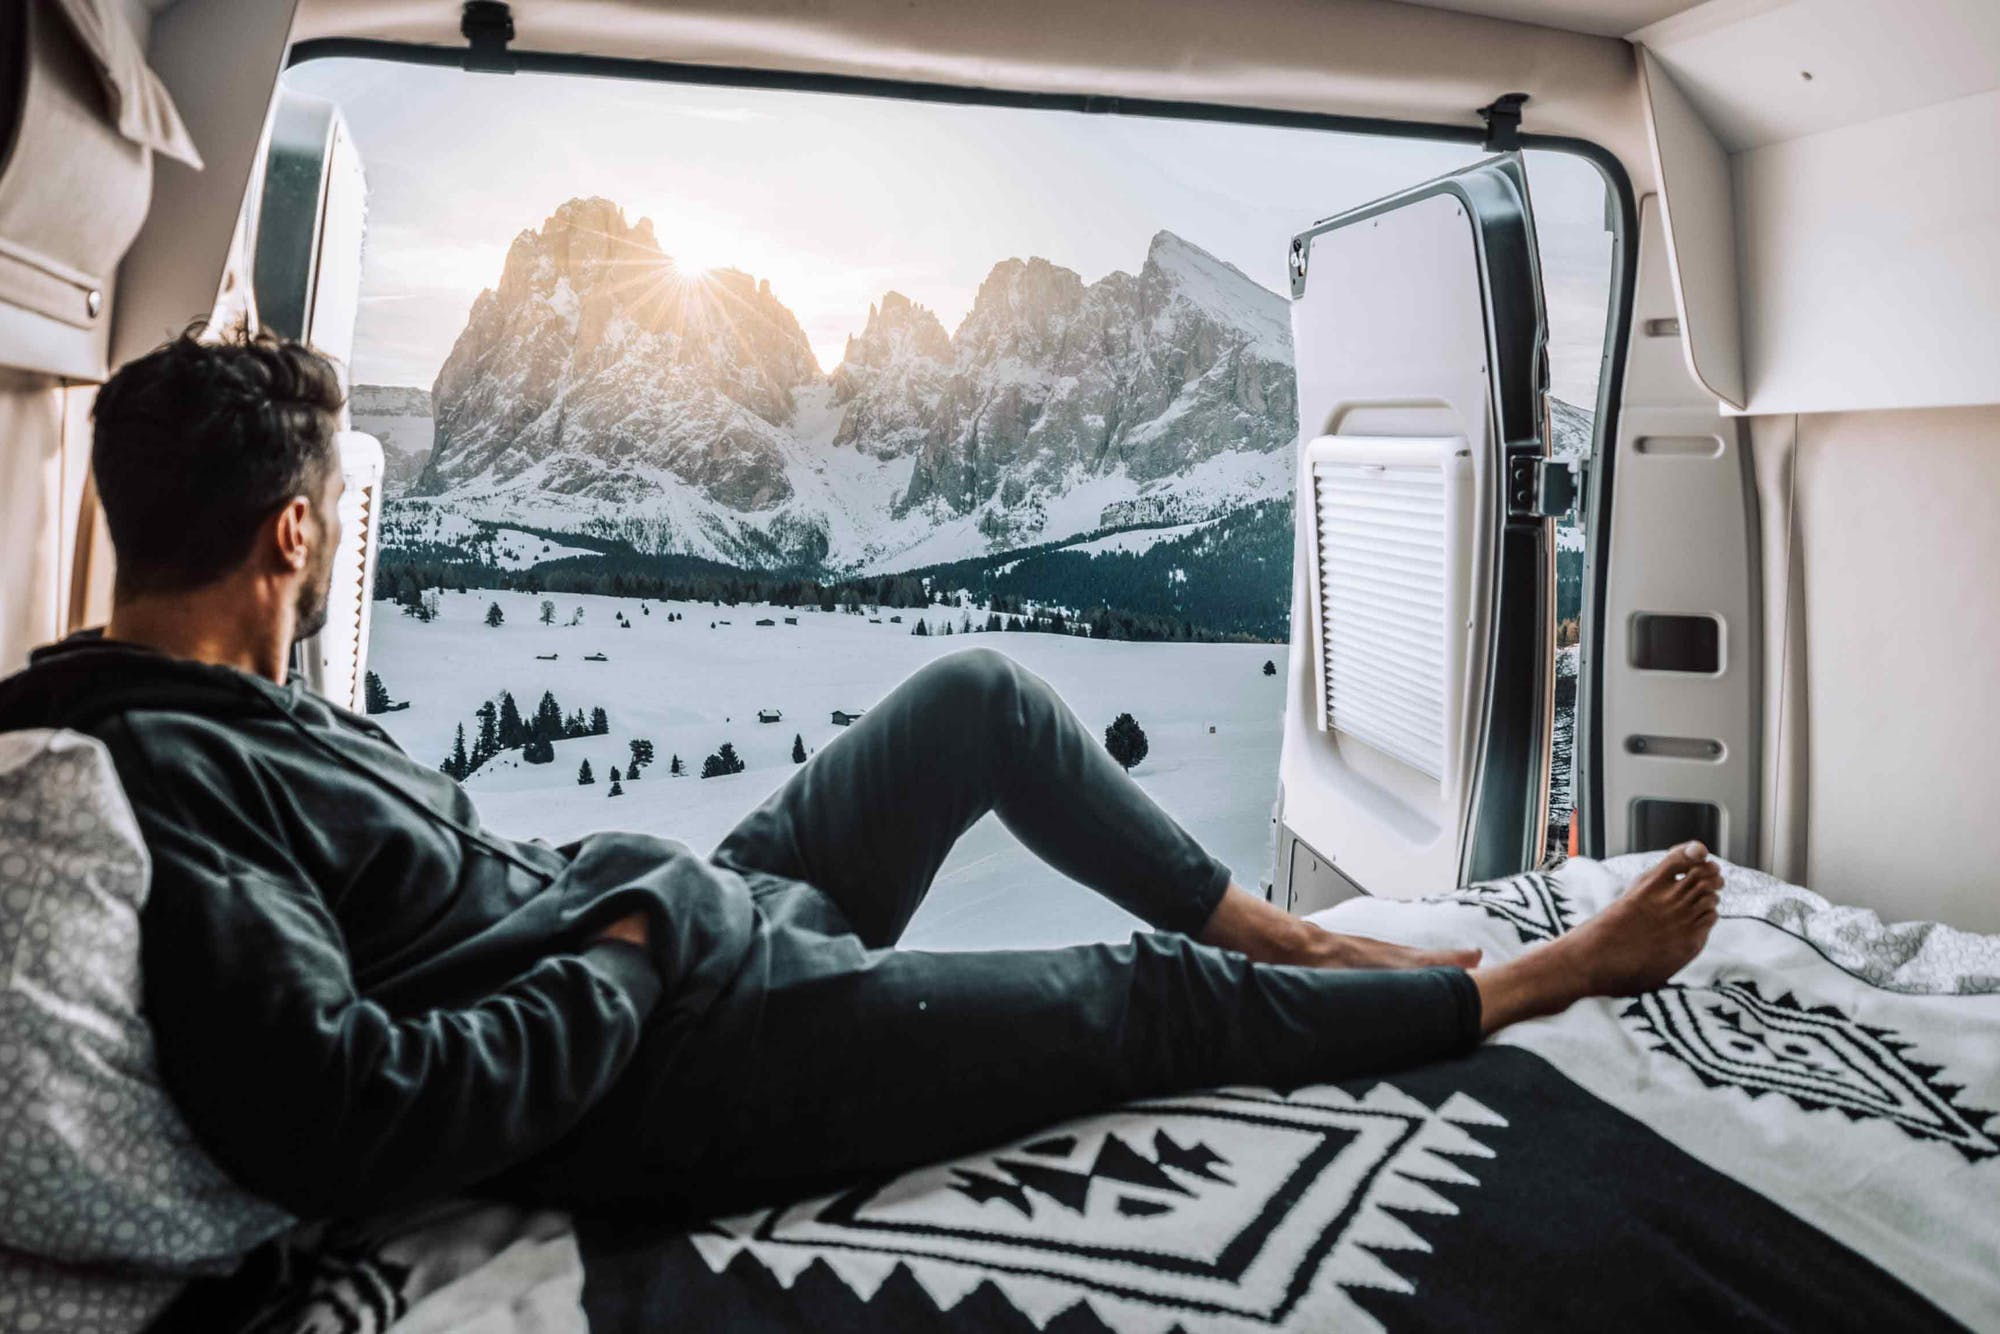 Man observing snowy mountains from the Nomad Model's inside